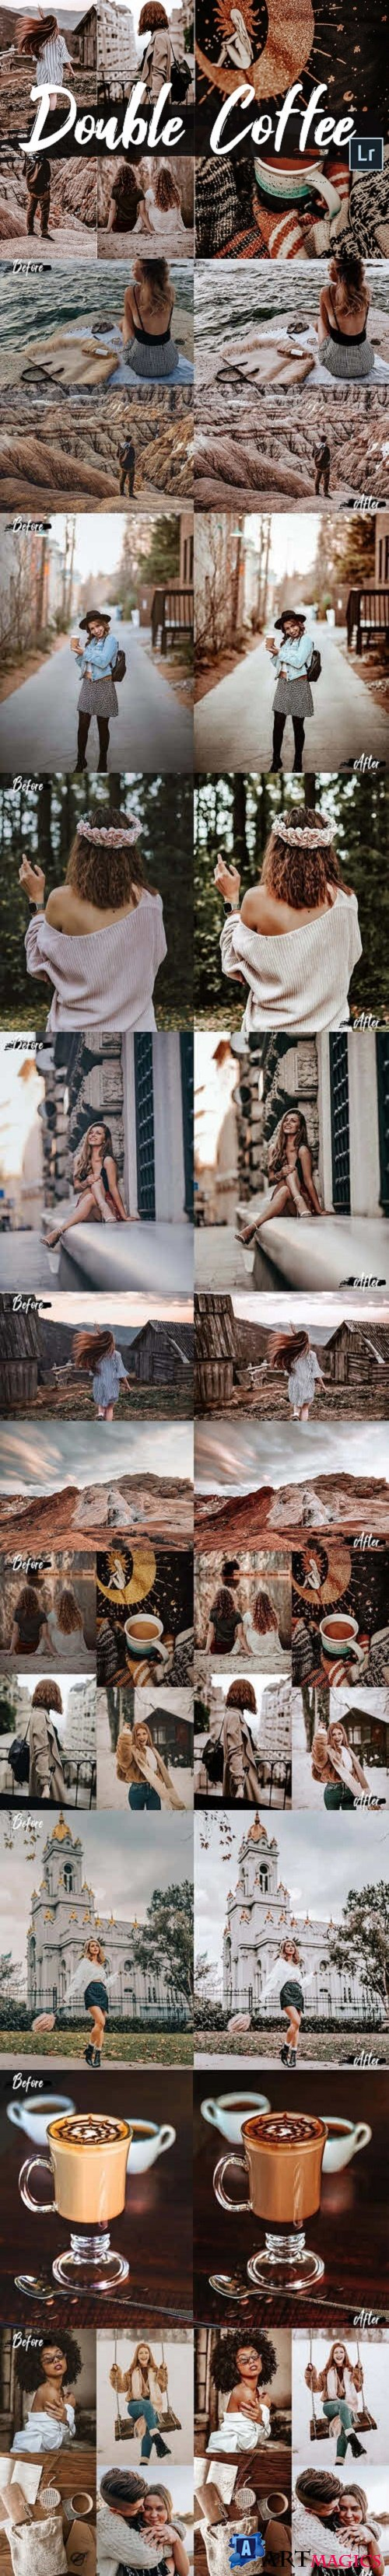 05 Double Coffee Lightroom Presets and ACR preset - 428281